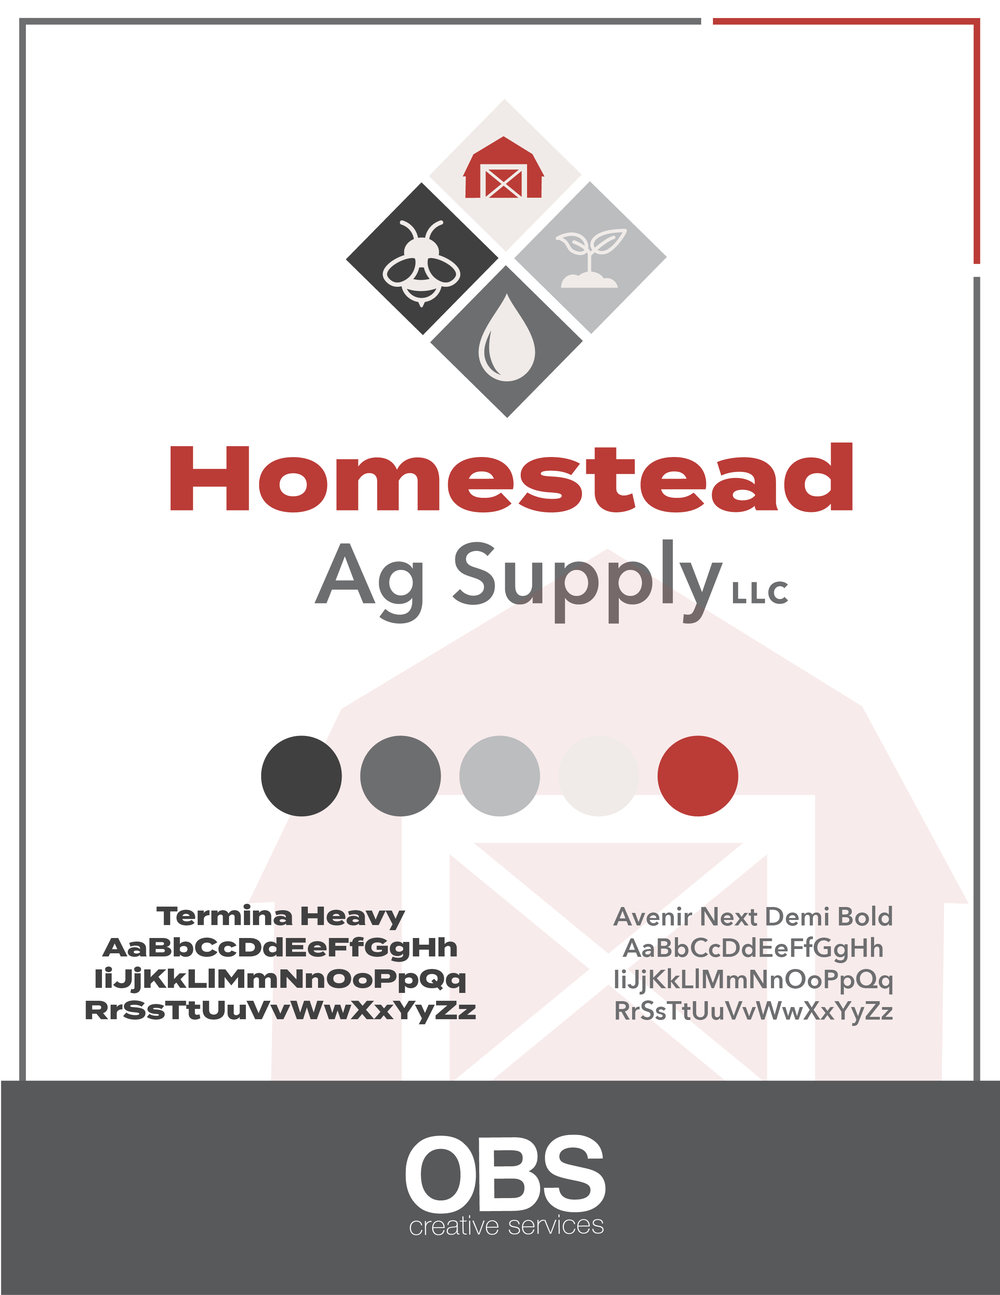 Homestead Ag Supply Brand Guide.jpg